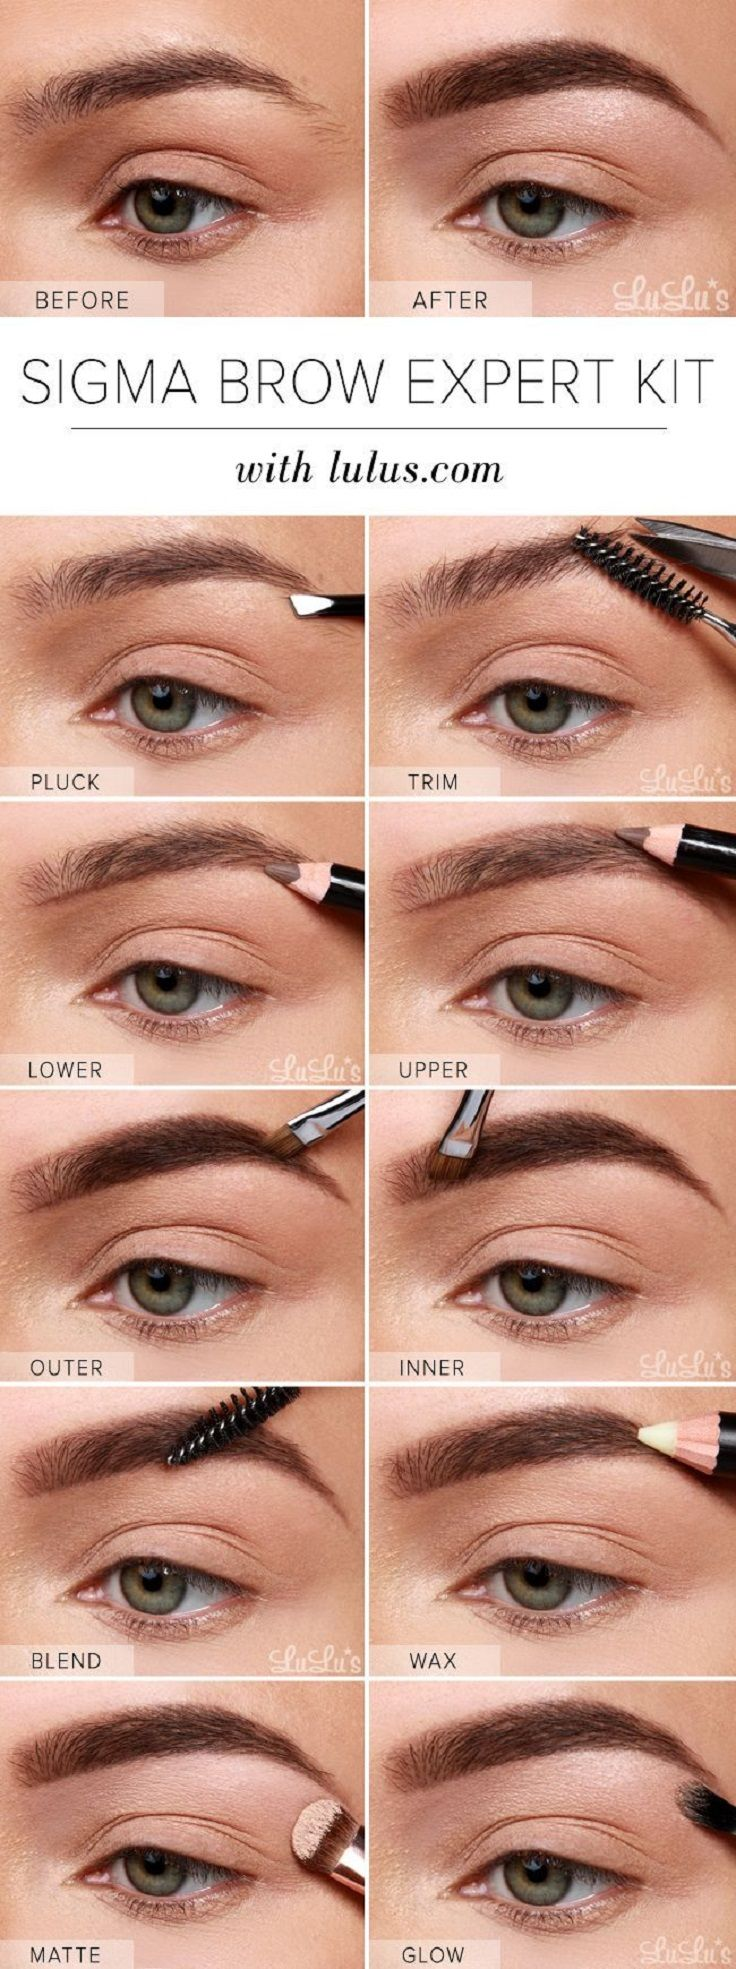 Eyebrow Shapes Images: 15 Ways To Have The Perfect Eyebrows [ Eyebrow Tutorials